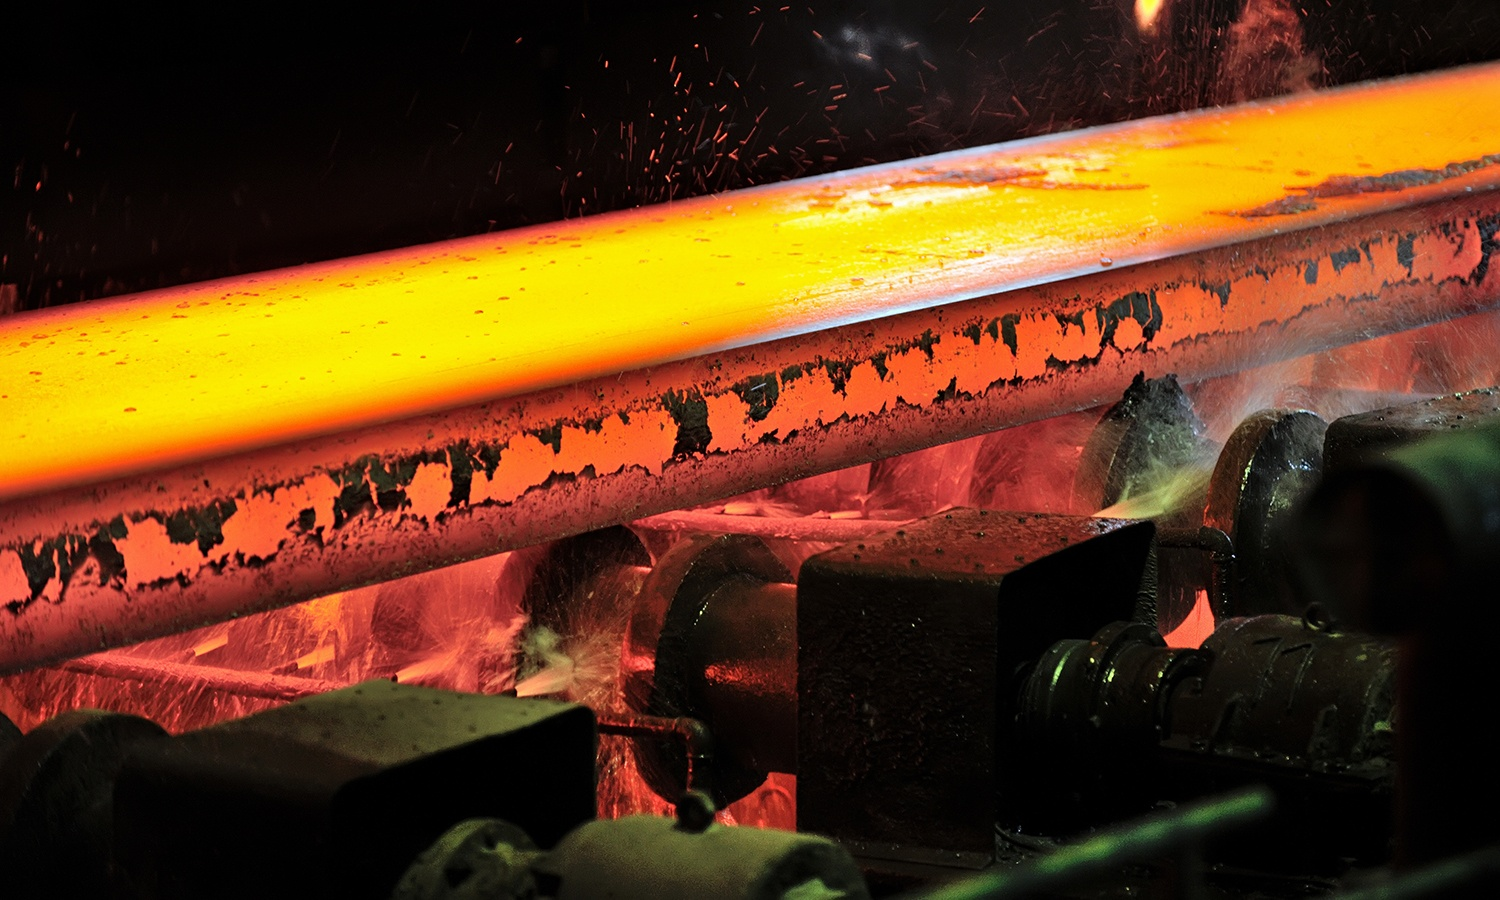 Annealing involves heating metal to red-hot temperatures—which can put enormous stress on a wire basket.